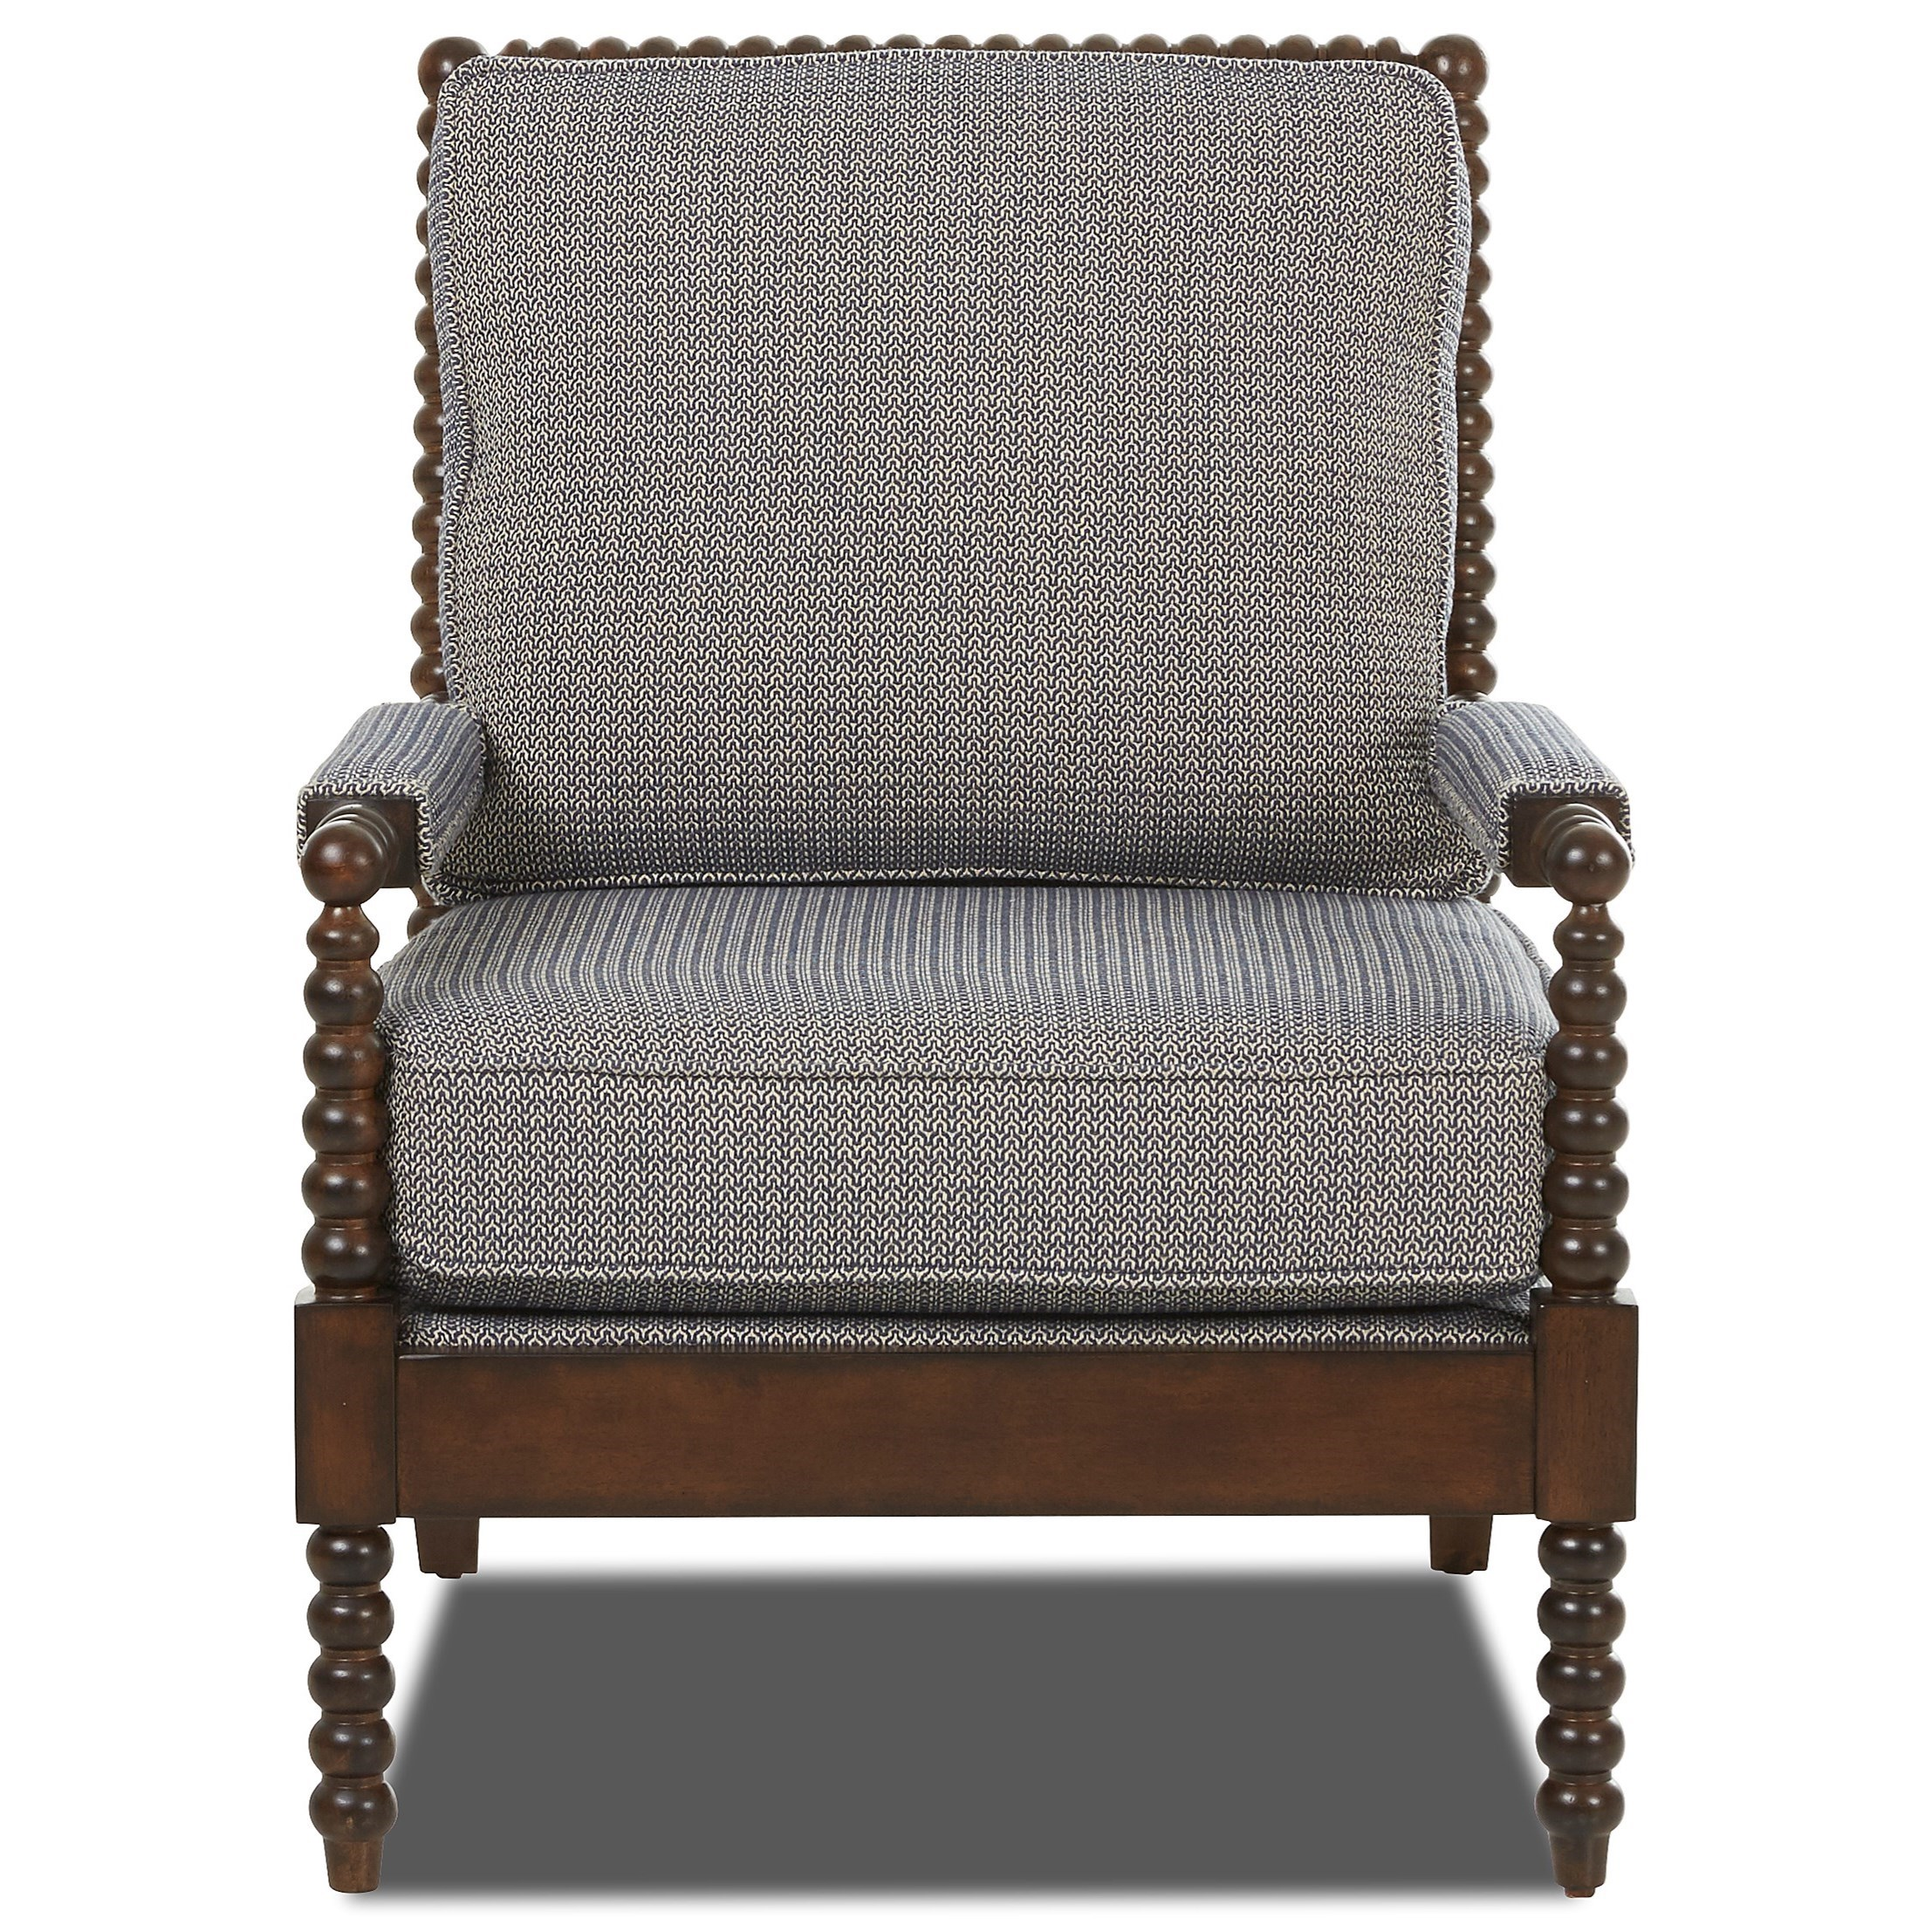 Klaussner Chairs And Accents K570 Oc Rocco Accent Chair